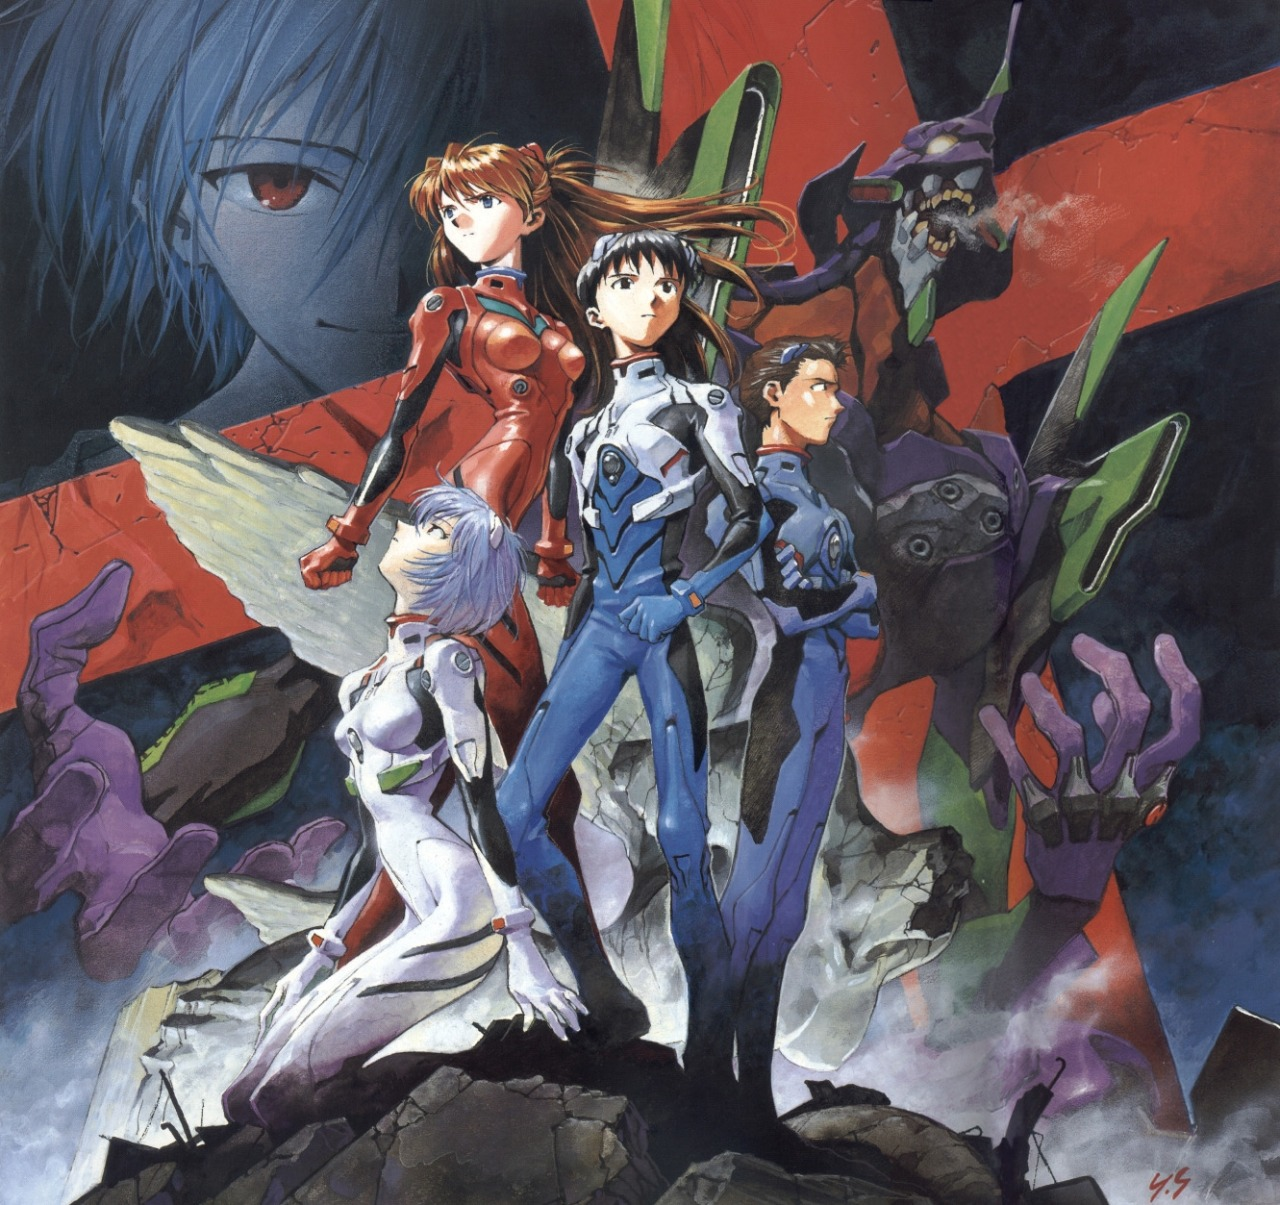 8 things to know about Neon Genesis Evangelion, the legendary anime now streaming on Netflix